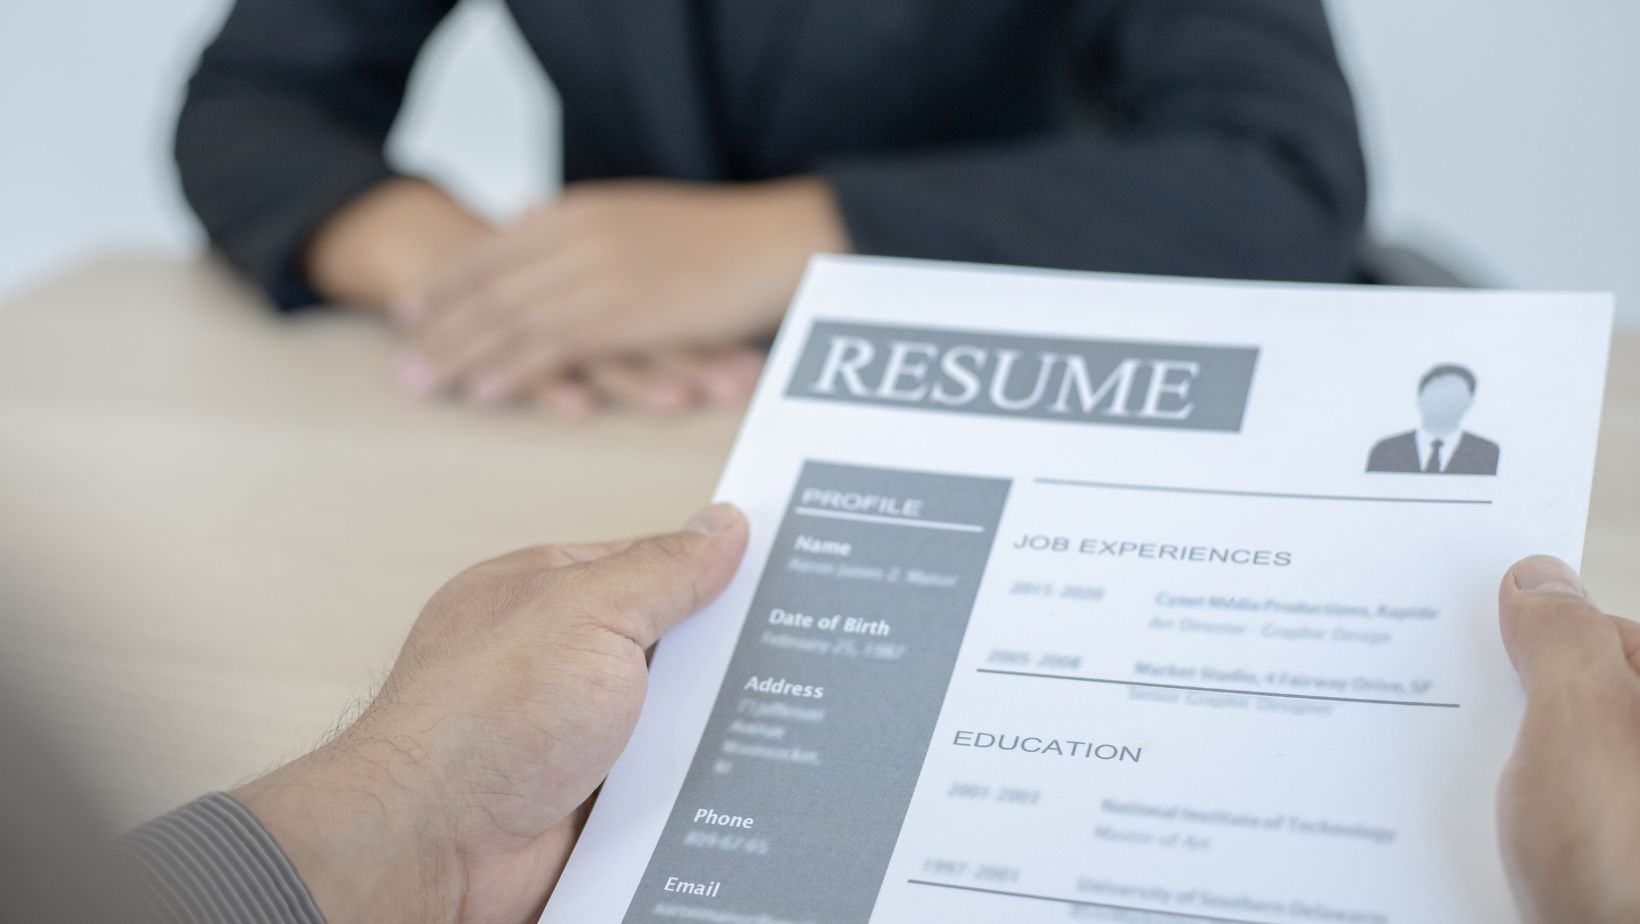 Updating your resume can help recruiters find you